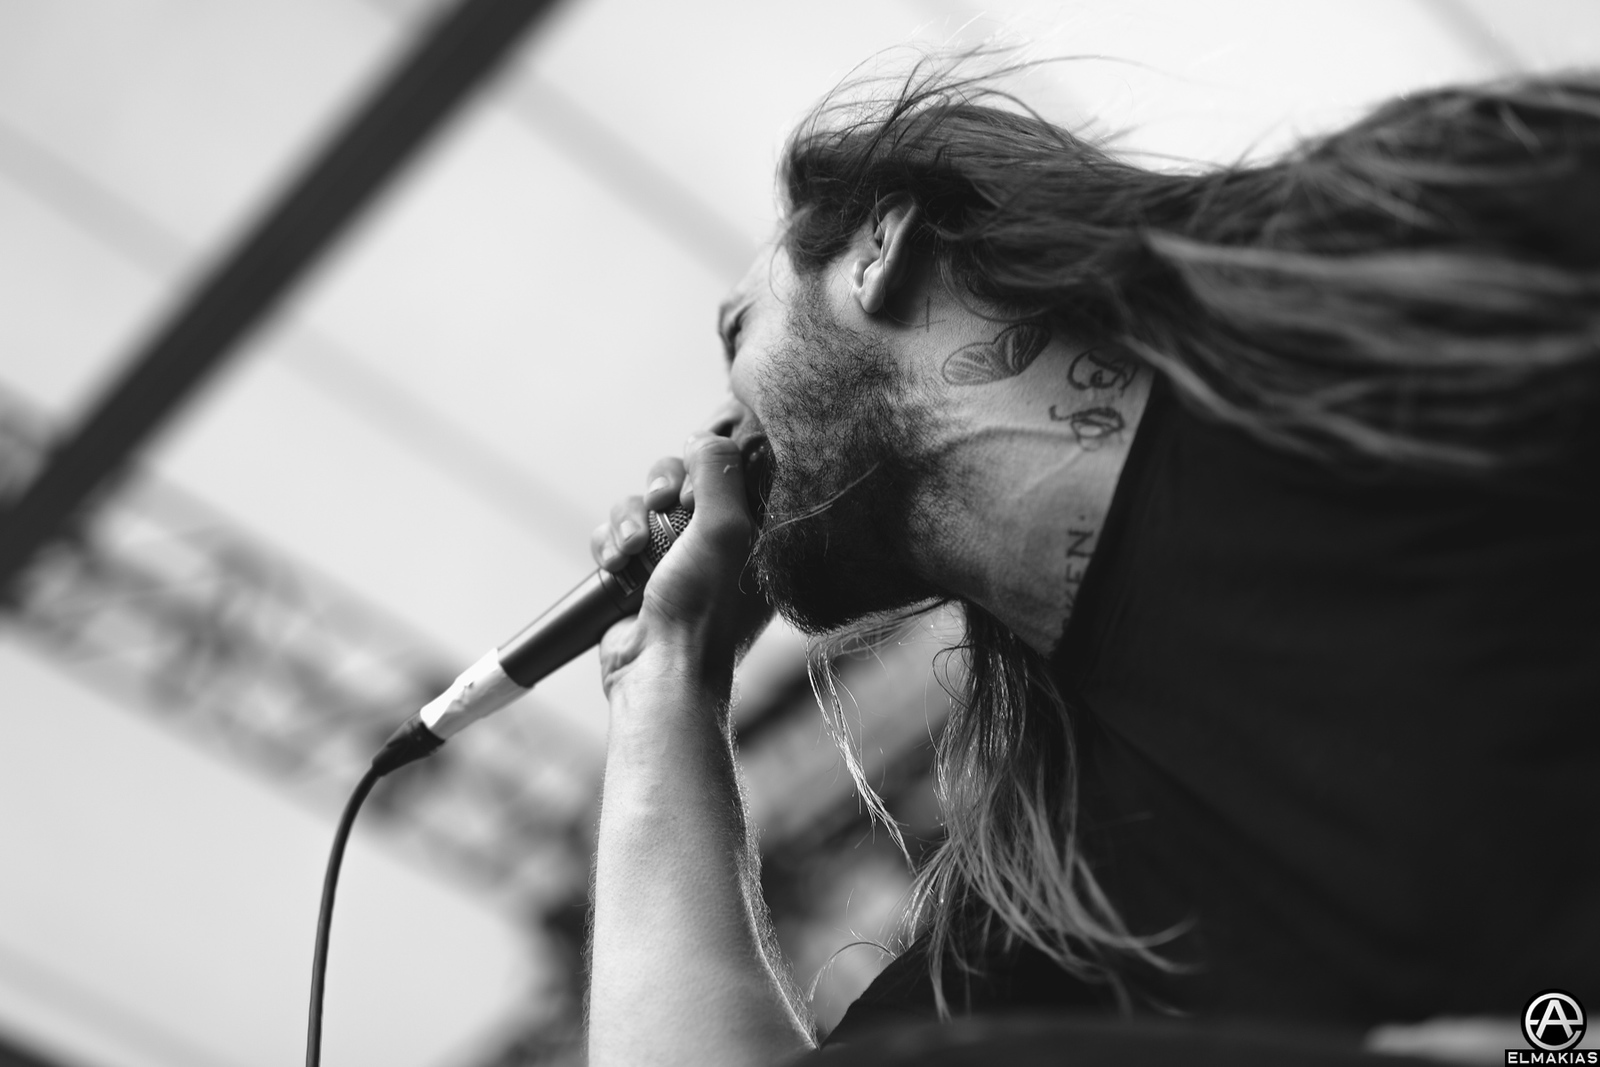 Lawrence Taylor of While She Sleeps at Rawk Attack in Germany